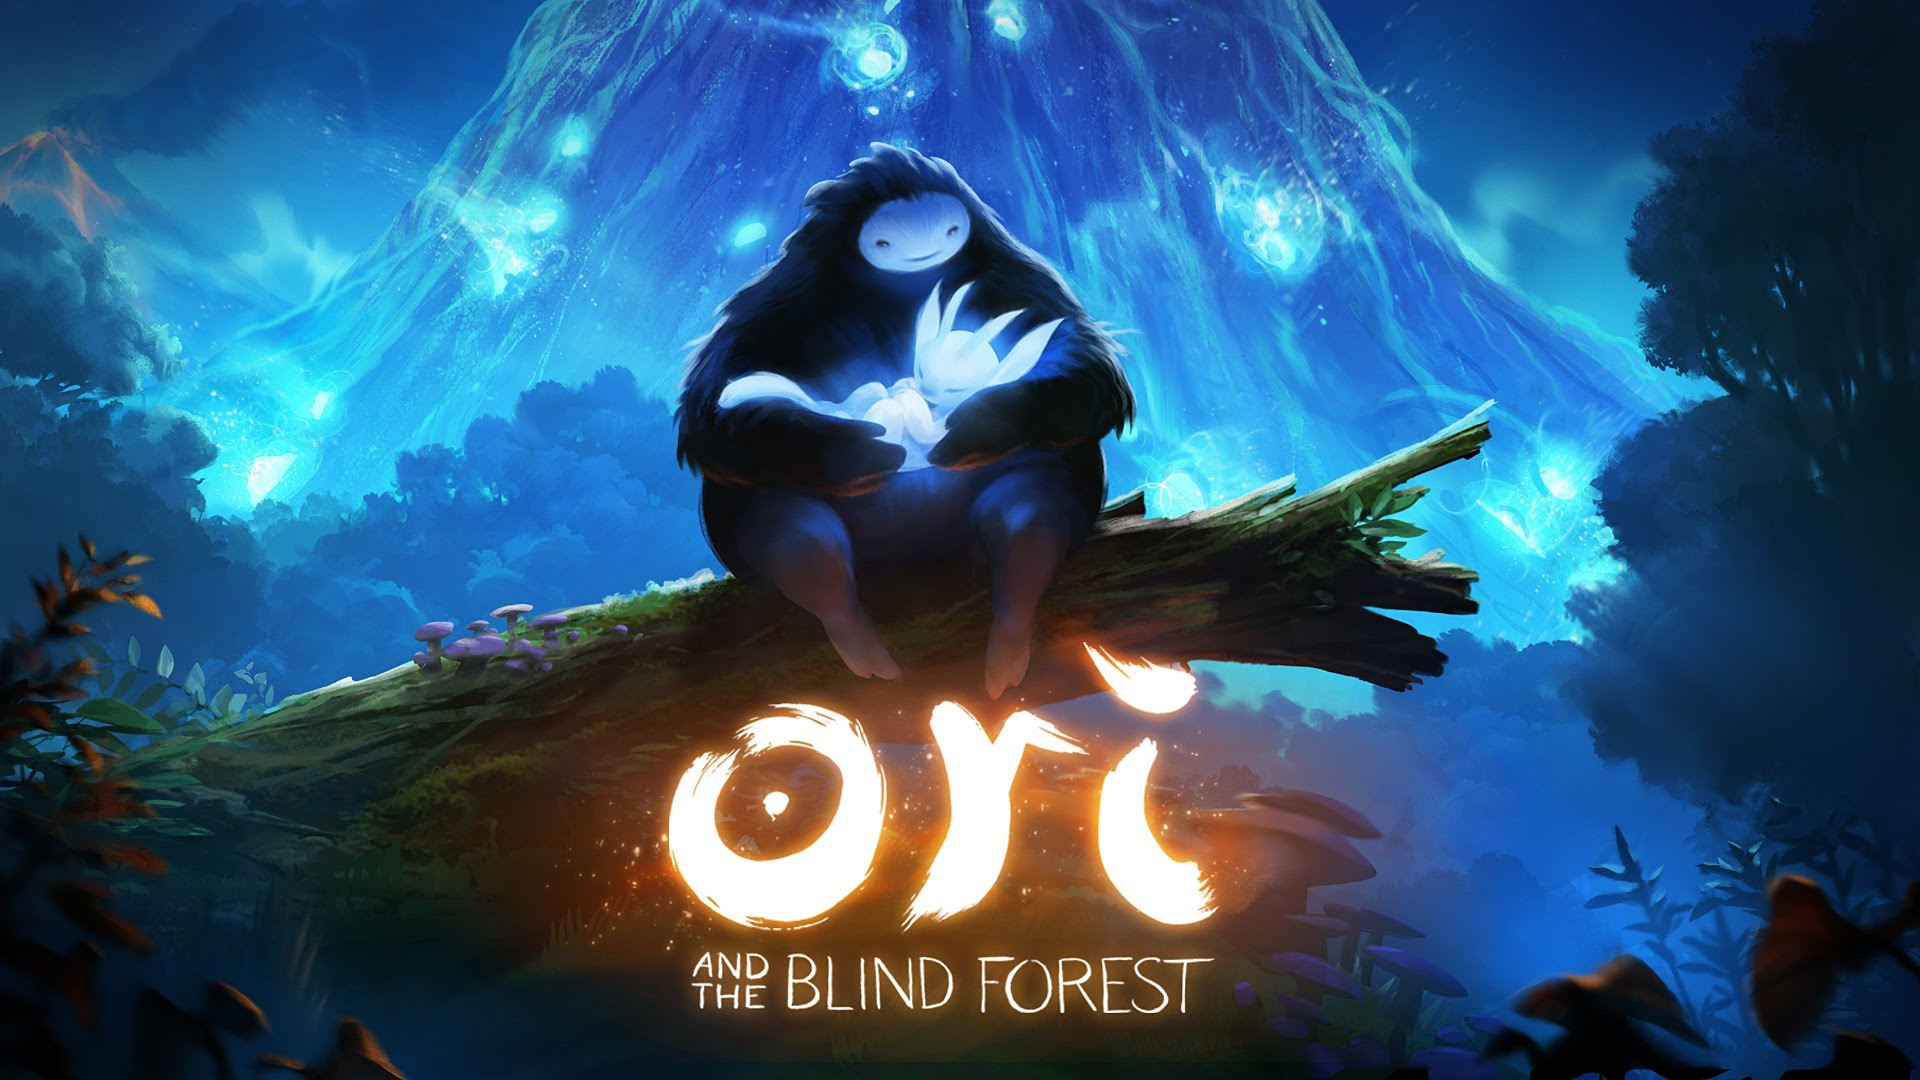 Image Credit: SXSW & Ori and the Blind Forest